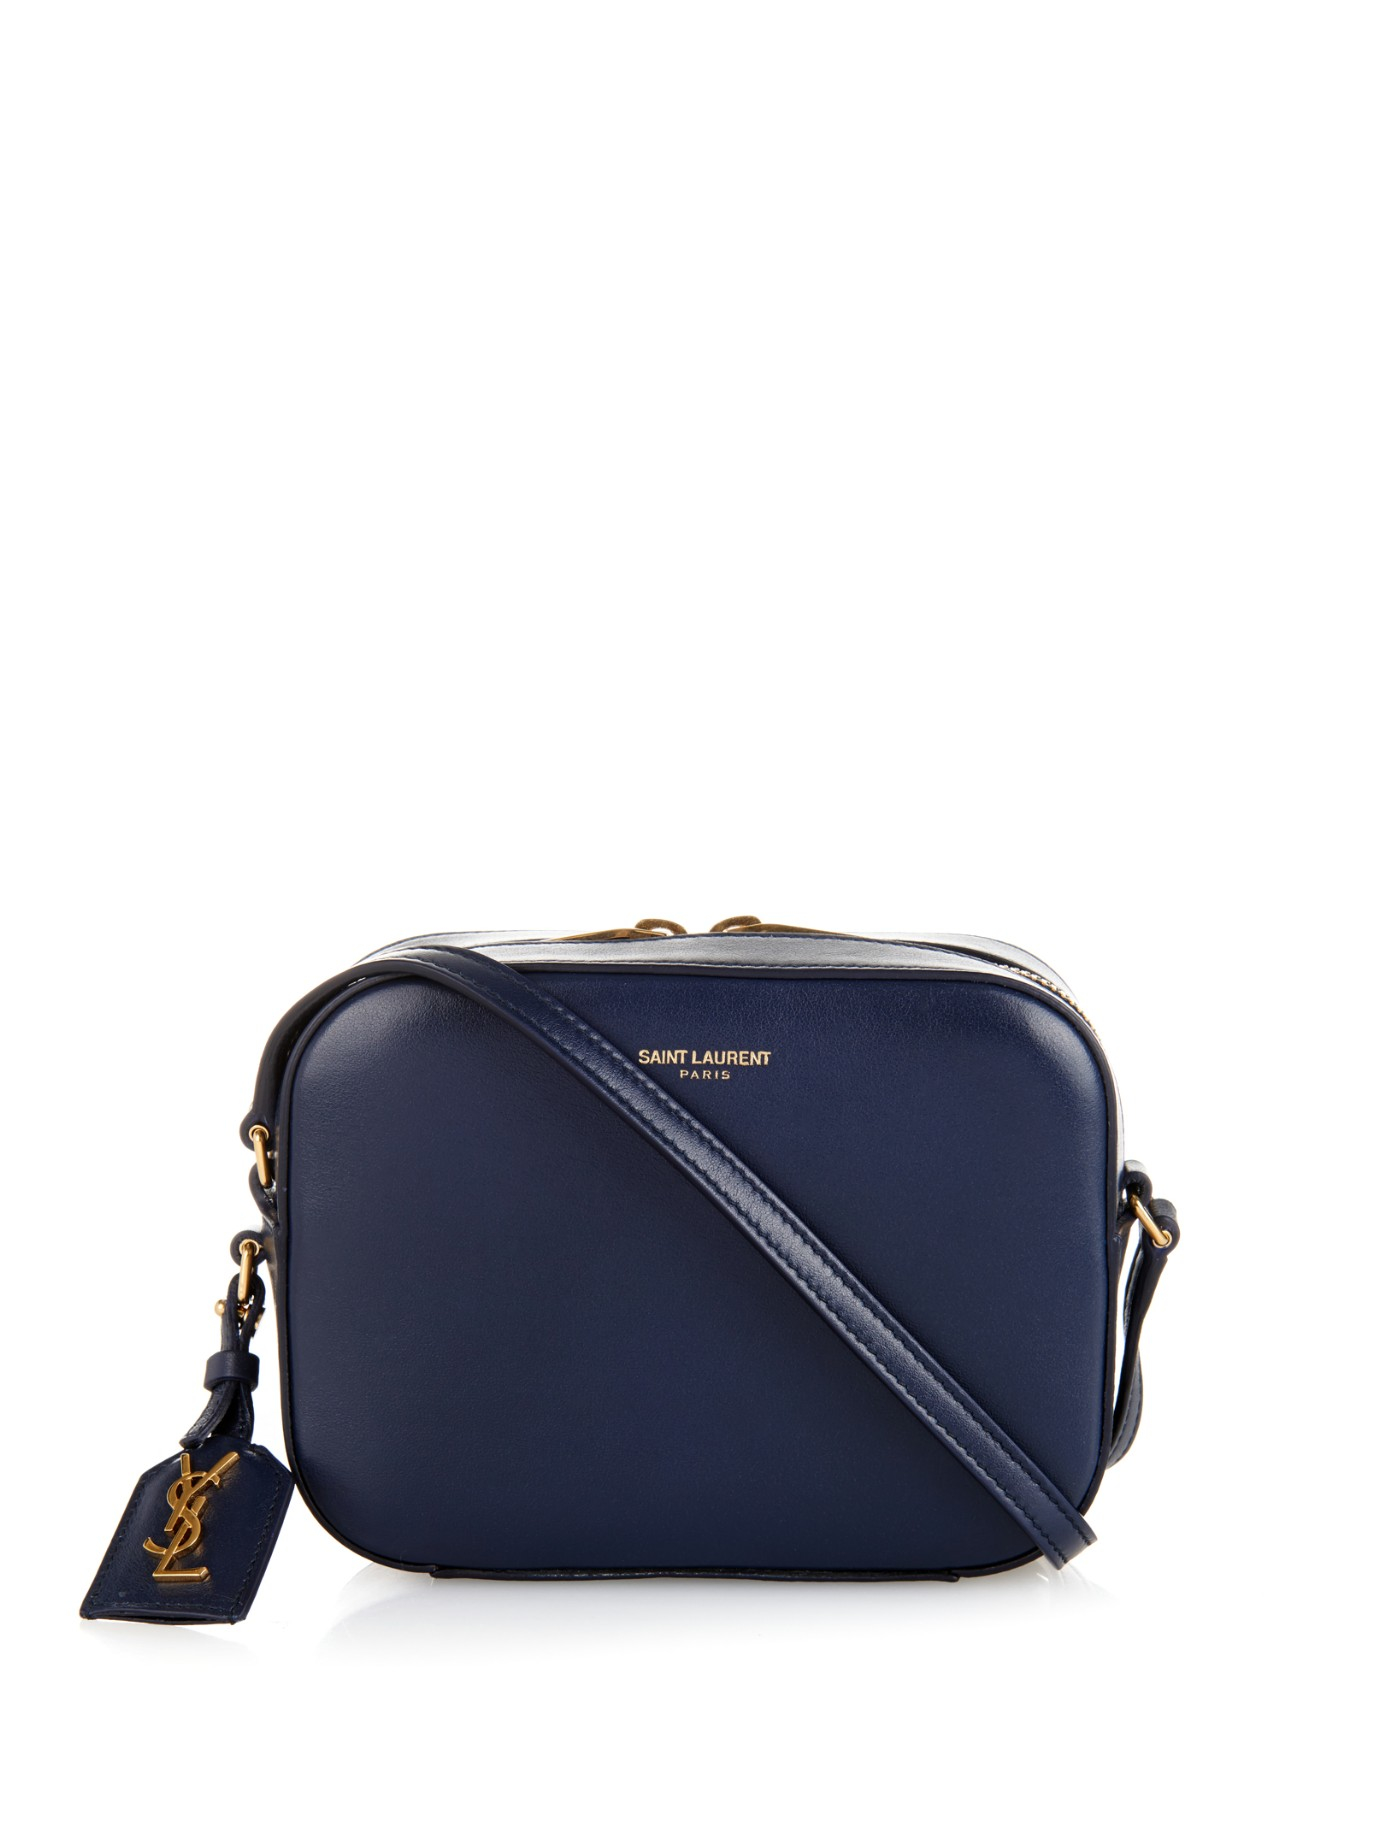 Saint laurent Small Leather Camera Bag in Blue | Lyst